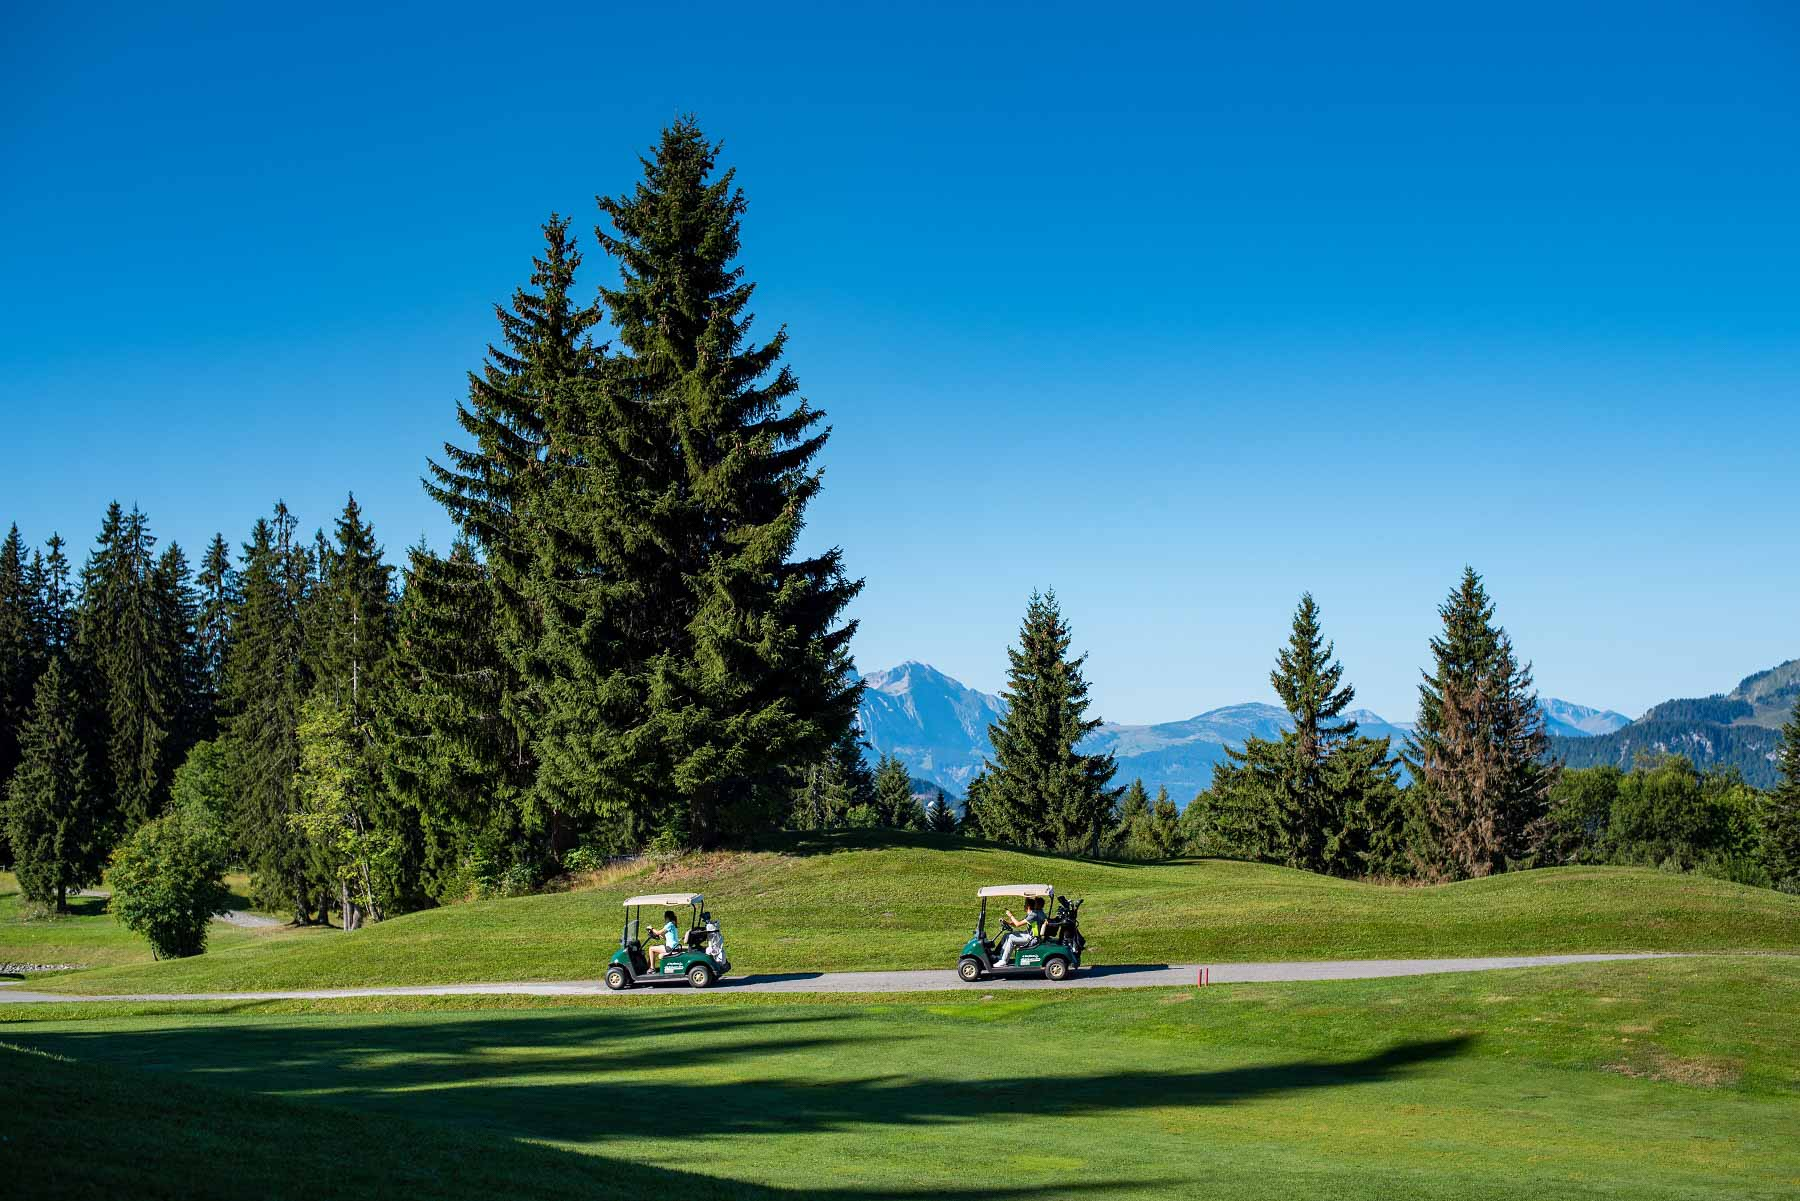 golf with a mountain view